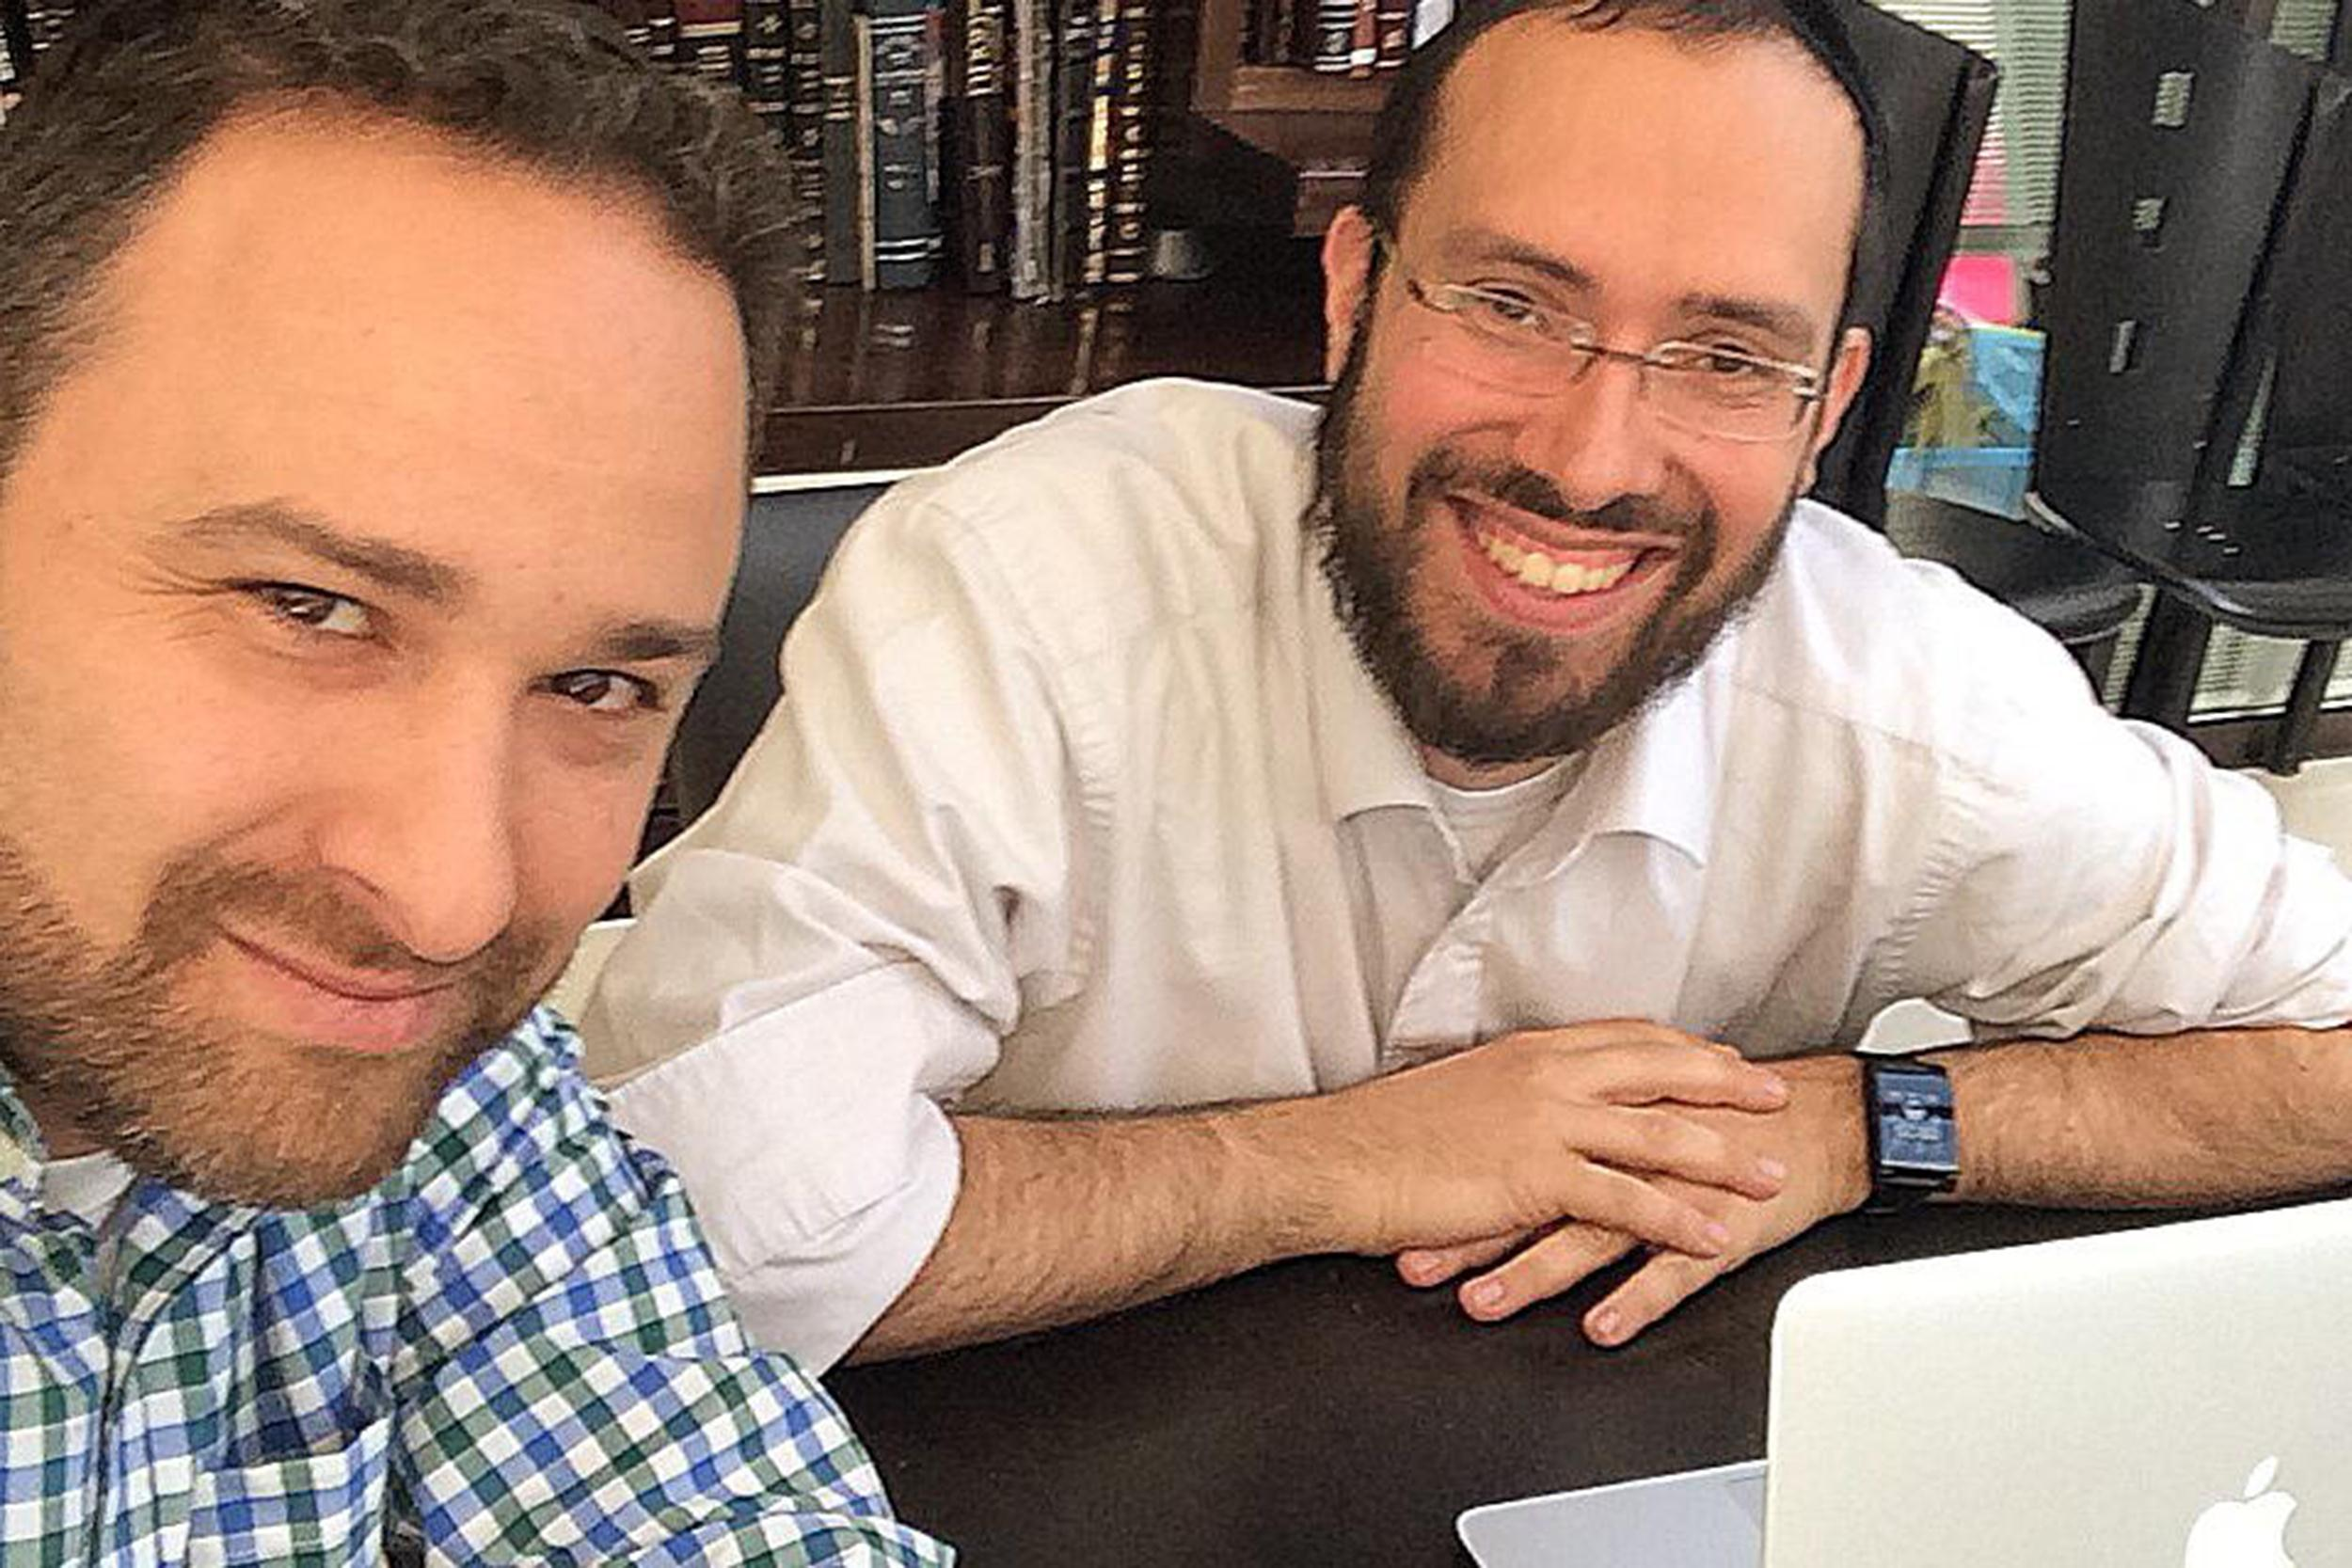 Image: Tech advisor, Hillel Fuld, left, meets with Jeremie Berrebi of Kima Ventures, a haredi angel investor